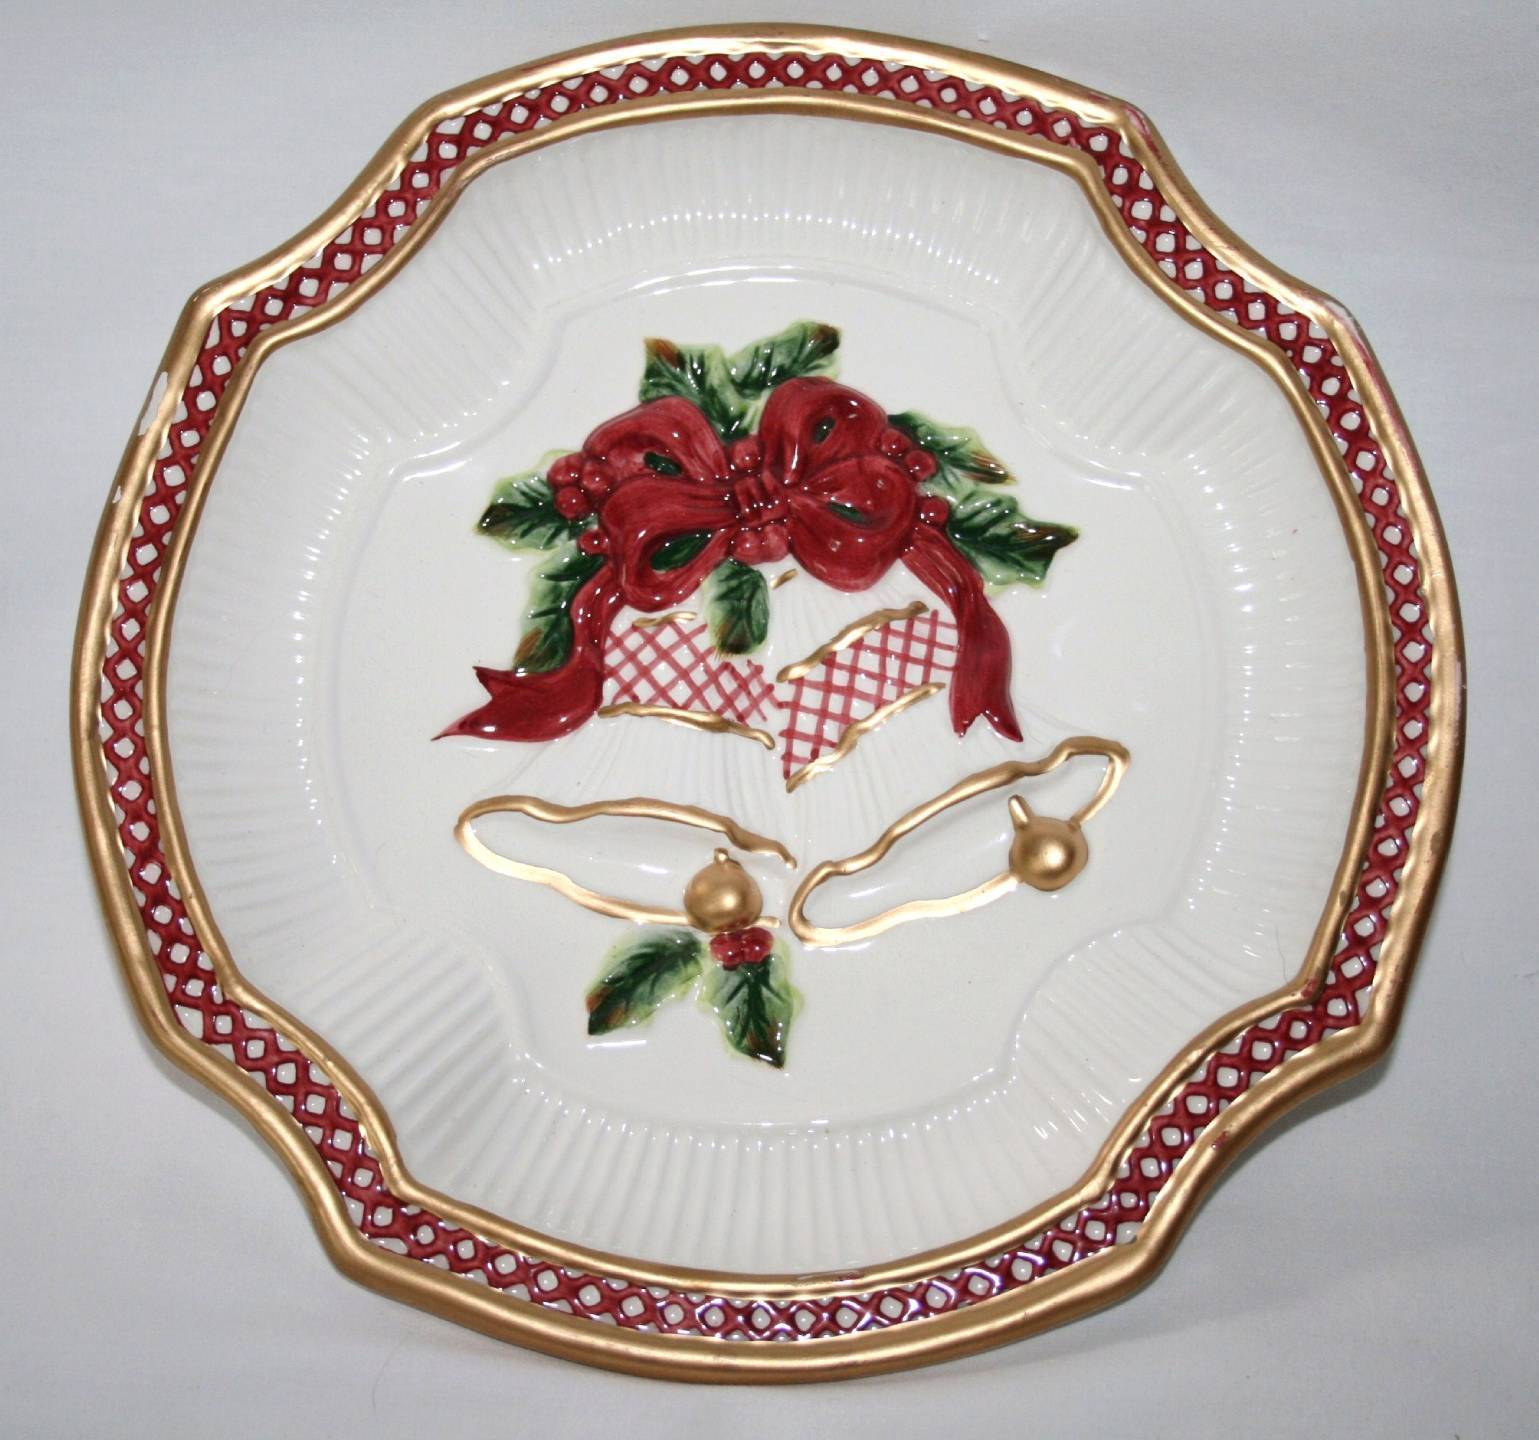 Fitz floyd holiday bells canape plate 1389 fitz floyd for What is a canape plate used for